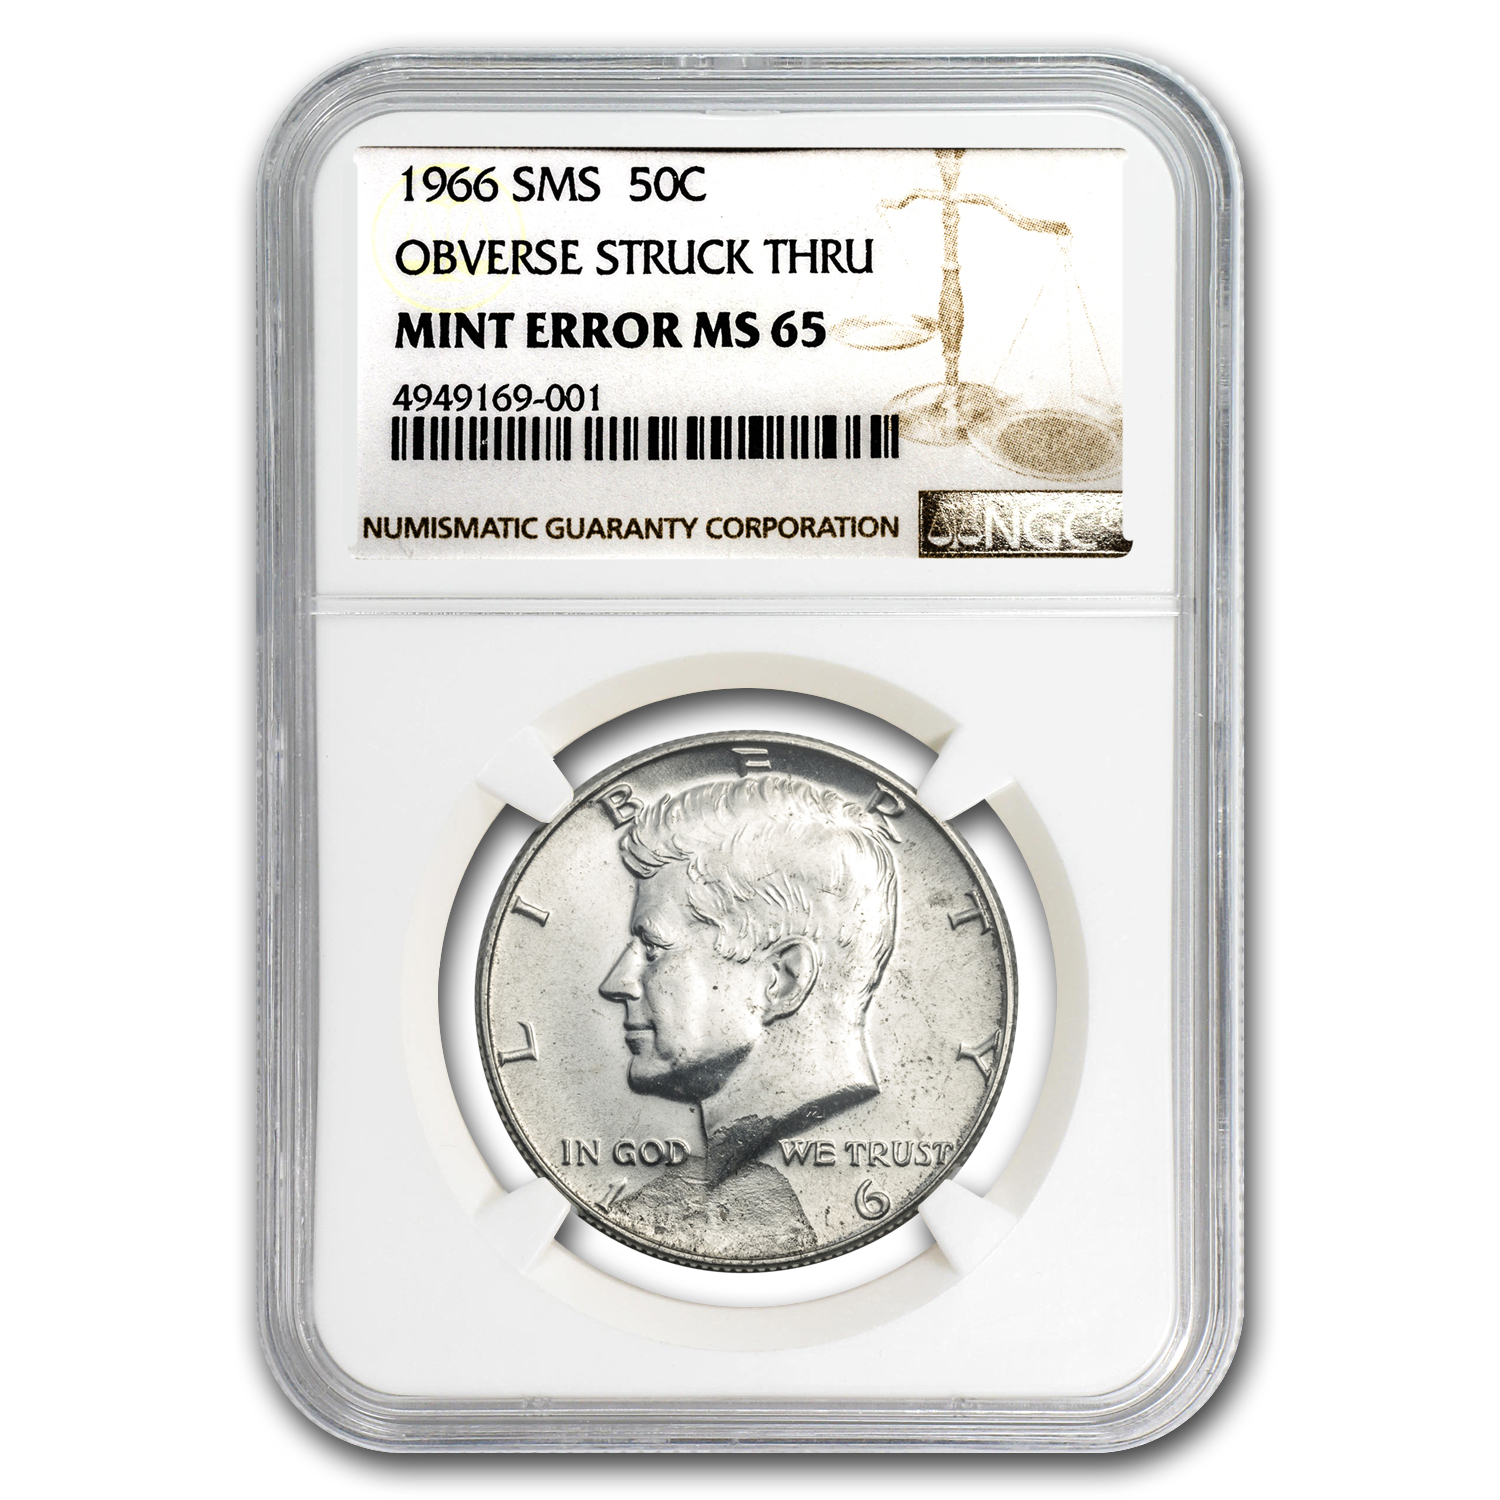 1966 Kennedy Half Dollar SMS MS-65 NGC (Obv Struck Thru Error)